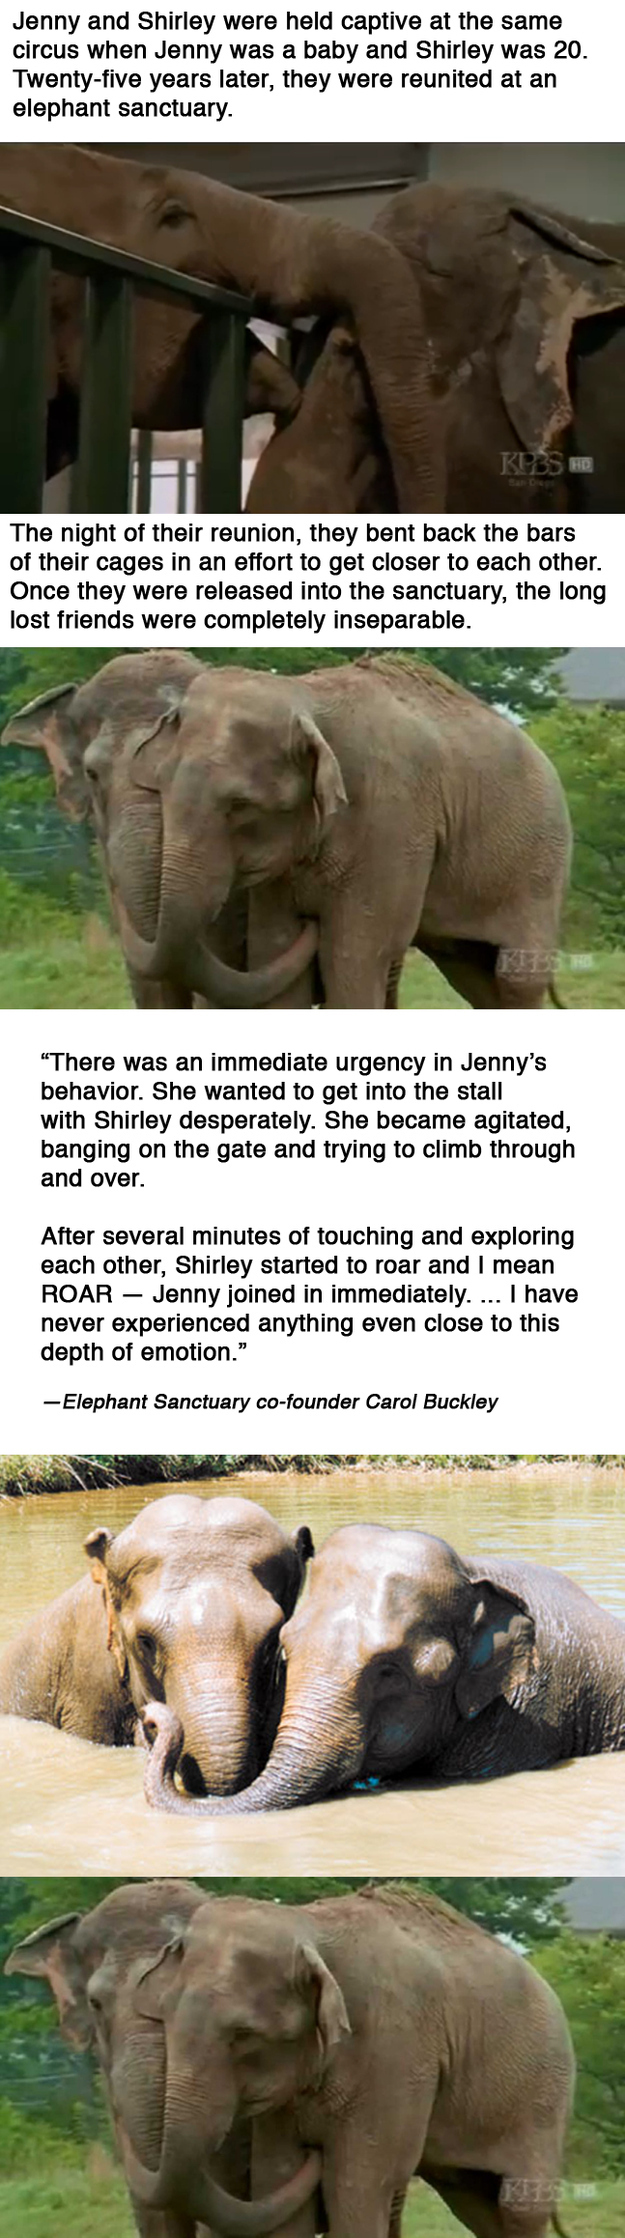 5. These abused circus elephants were reunited 25 years later at an elephant sanctuary. Their story is moving.